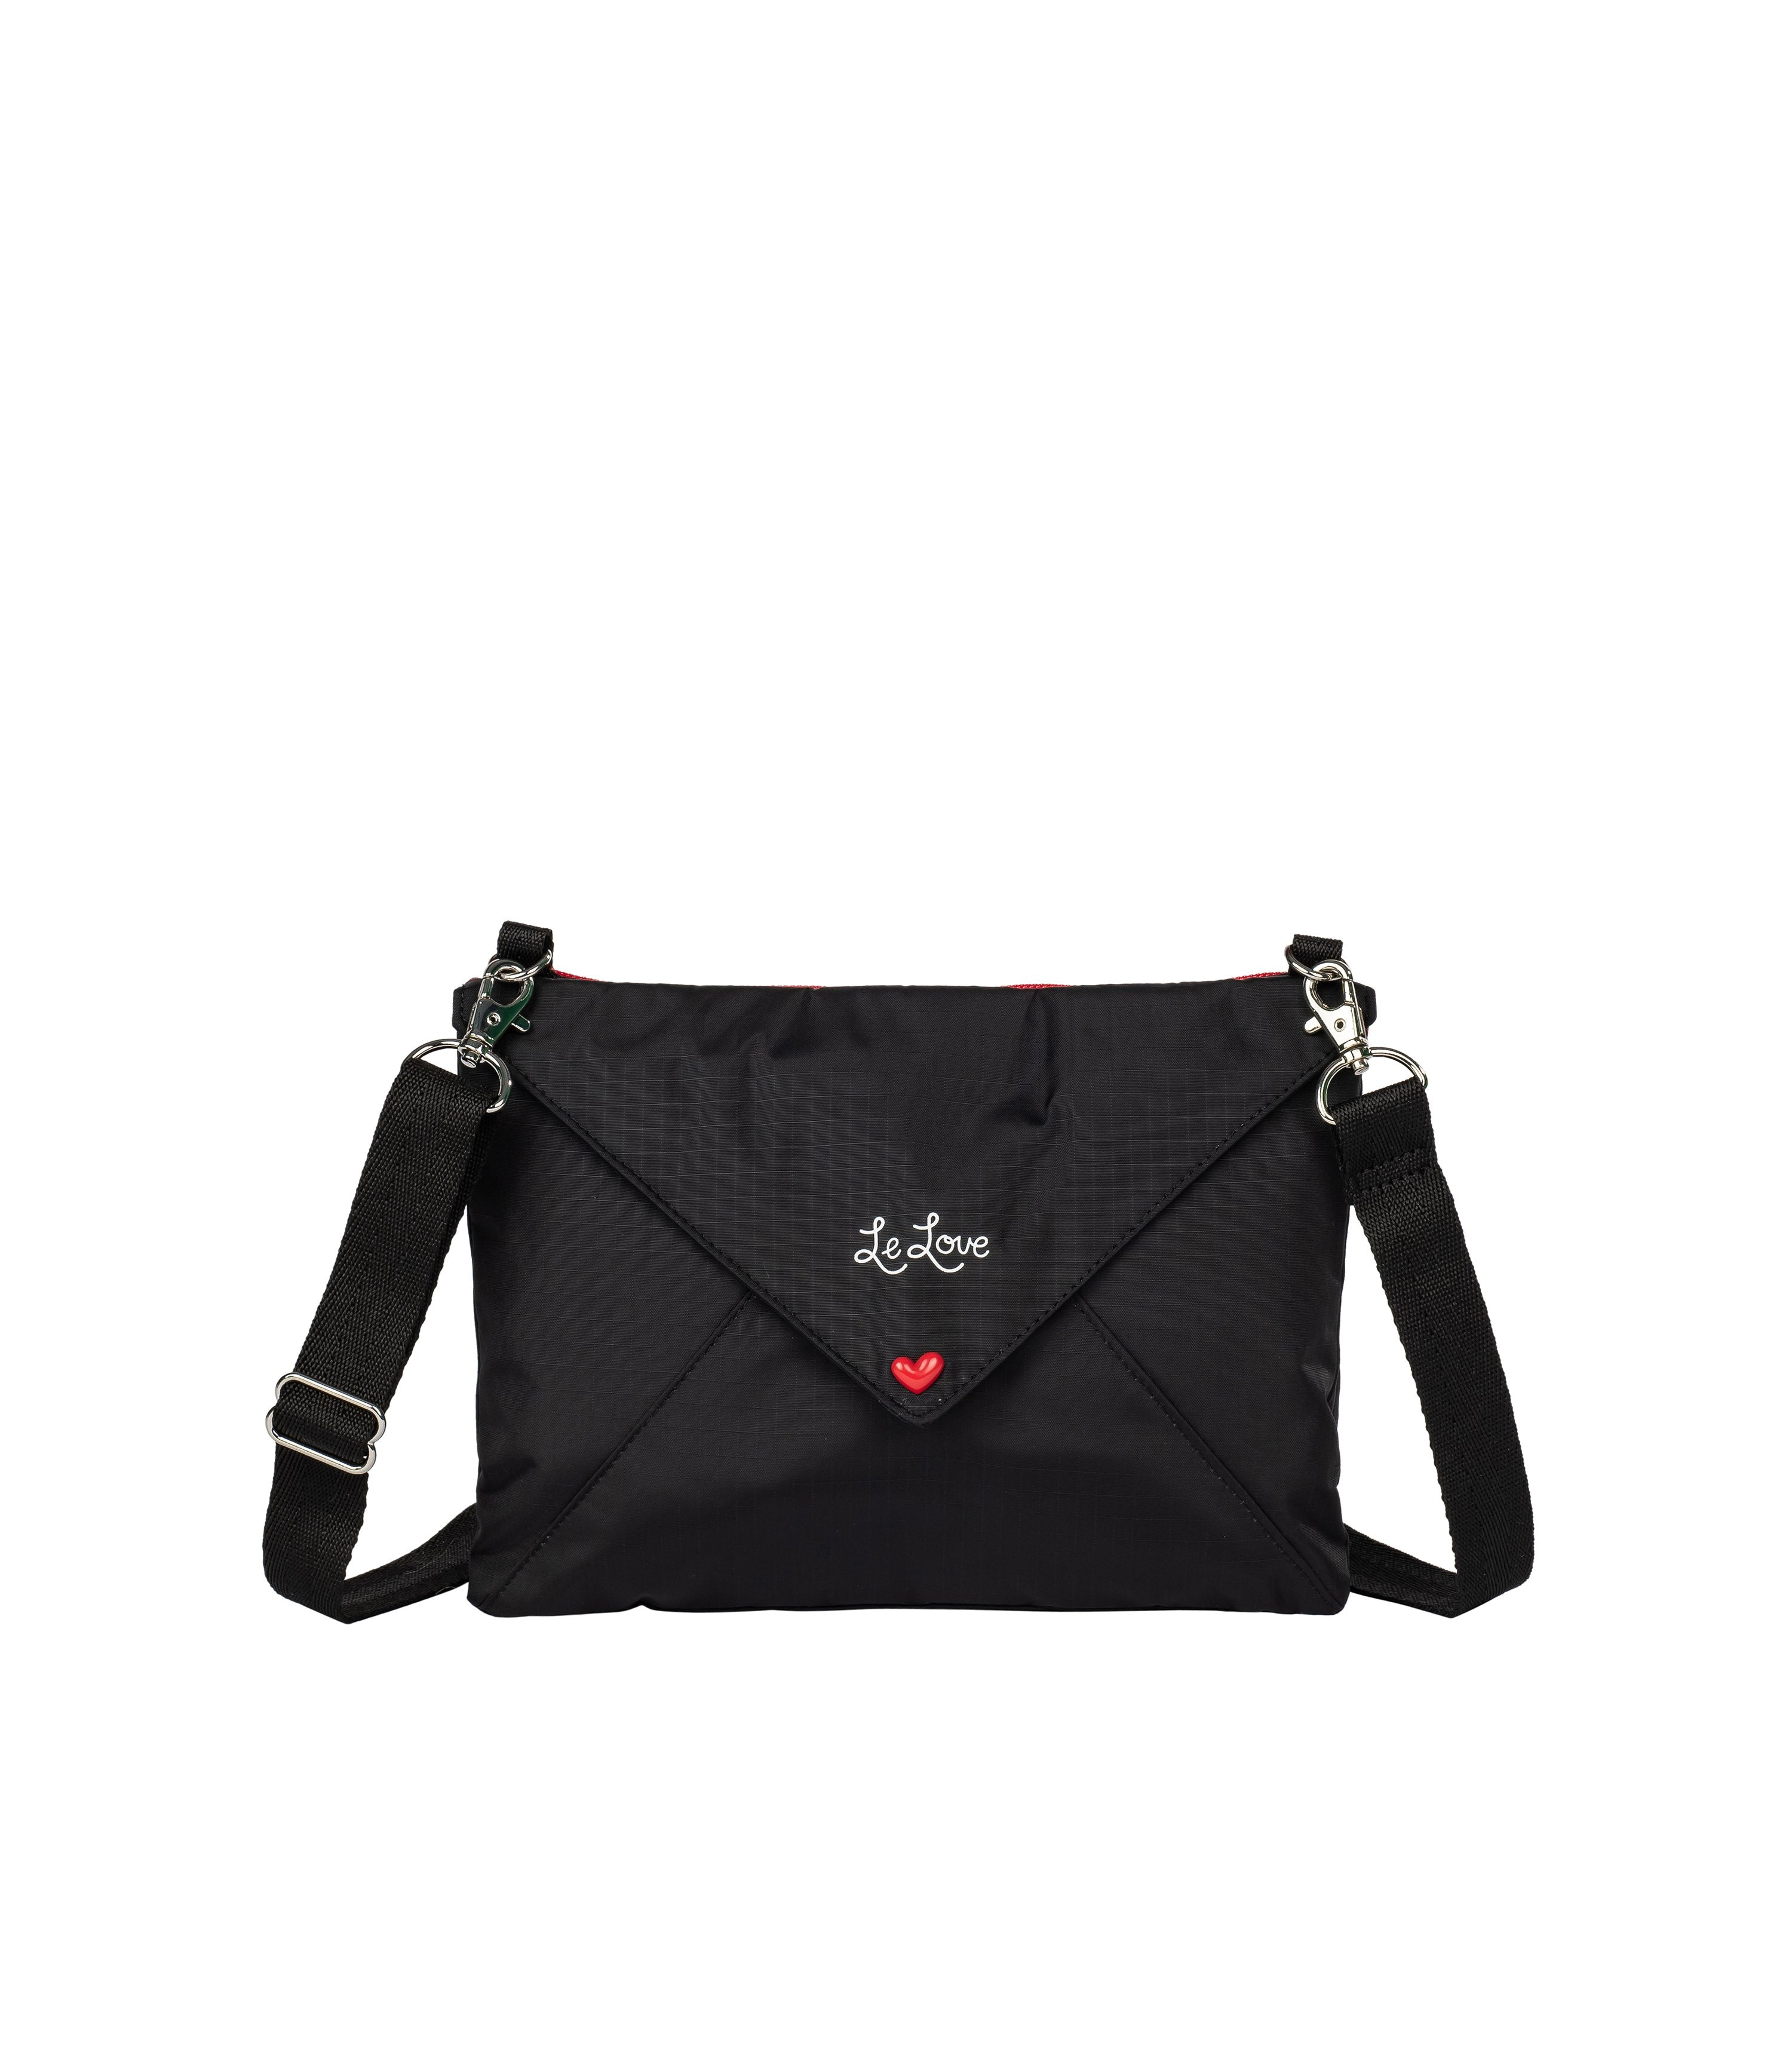 LeSportsac - Handbags - Love Letter Crossbody - Sealed With A Kiss